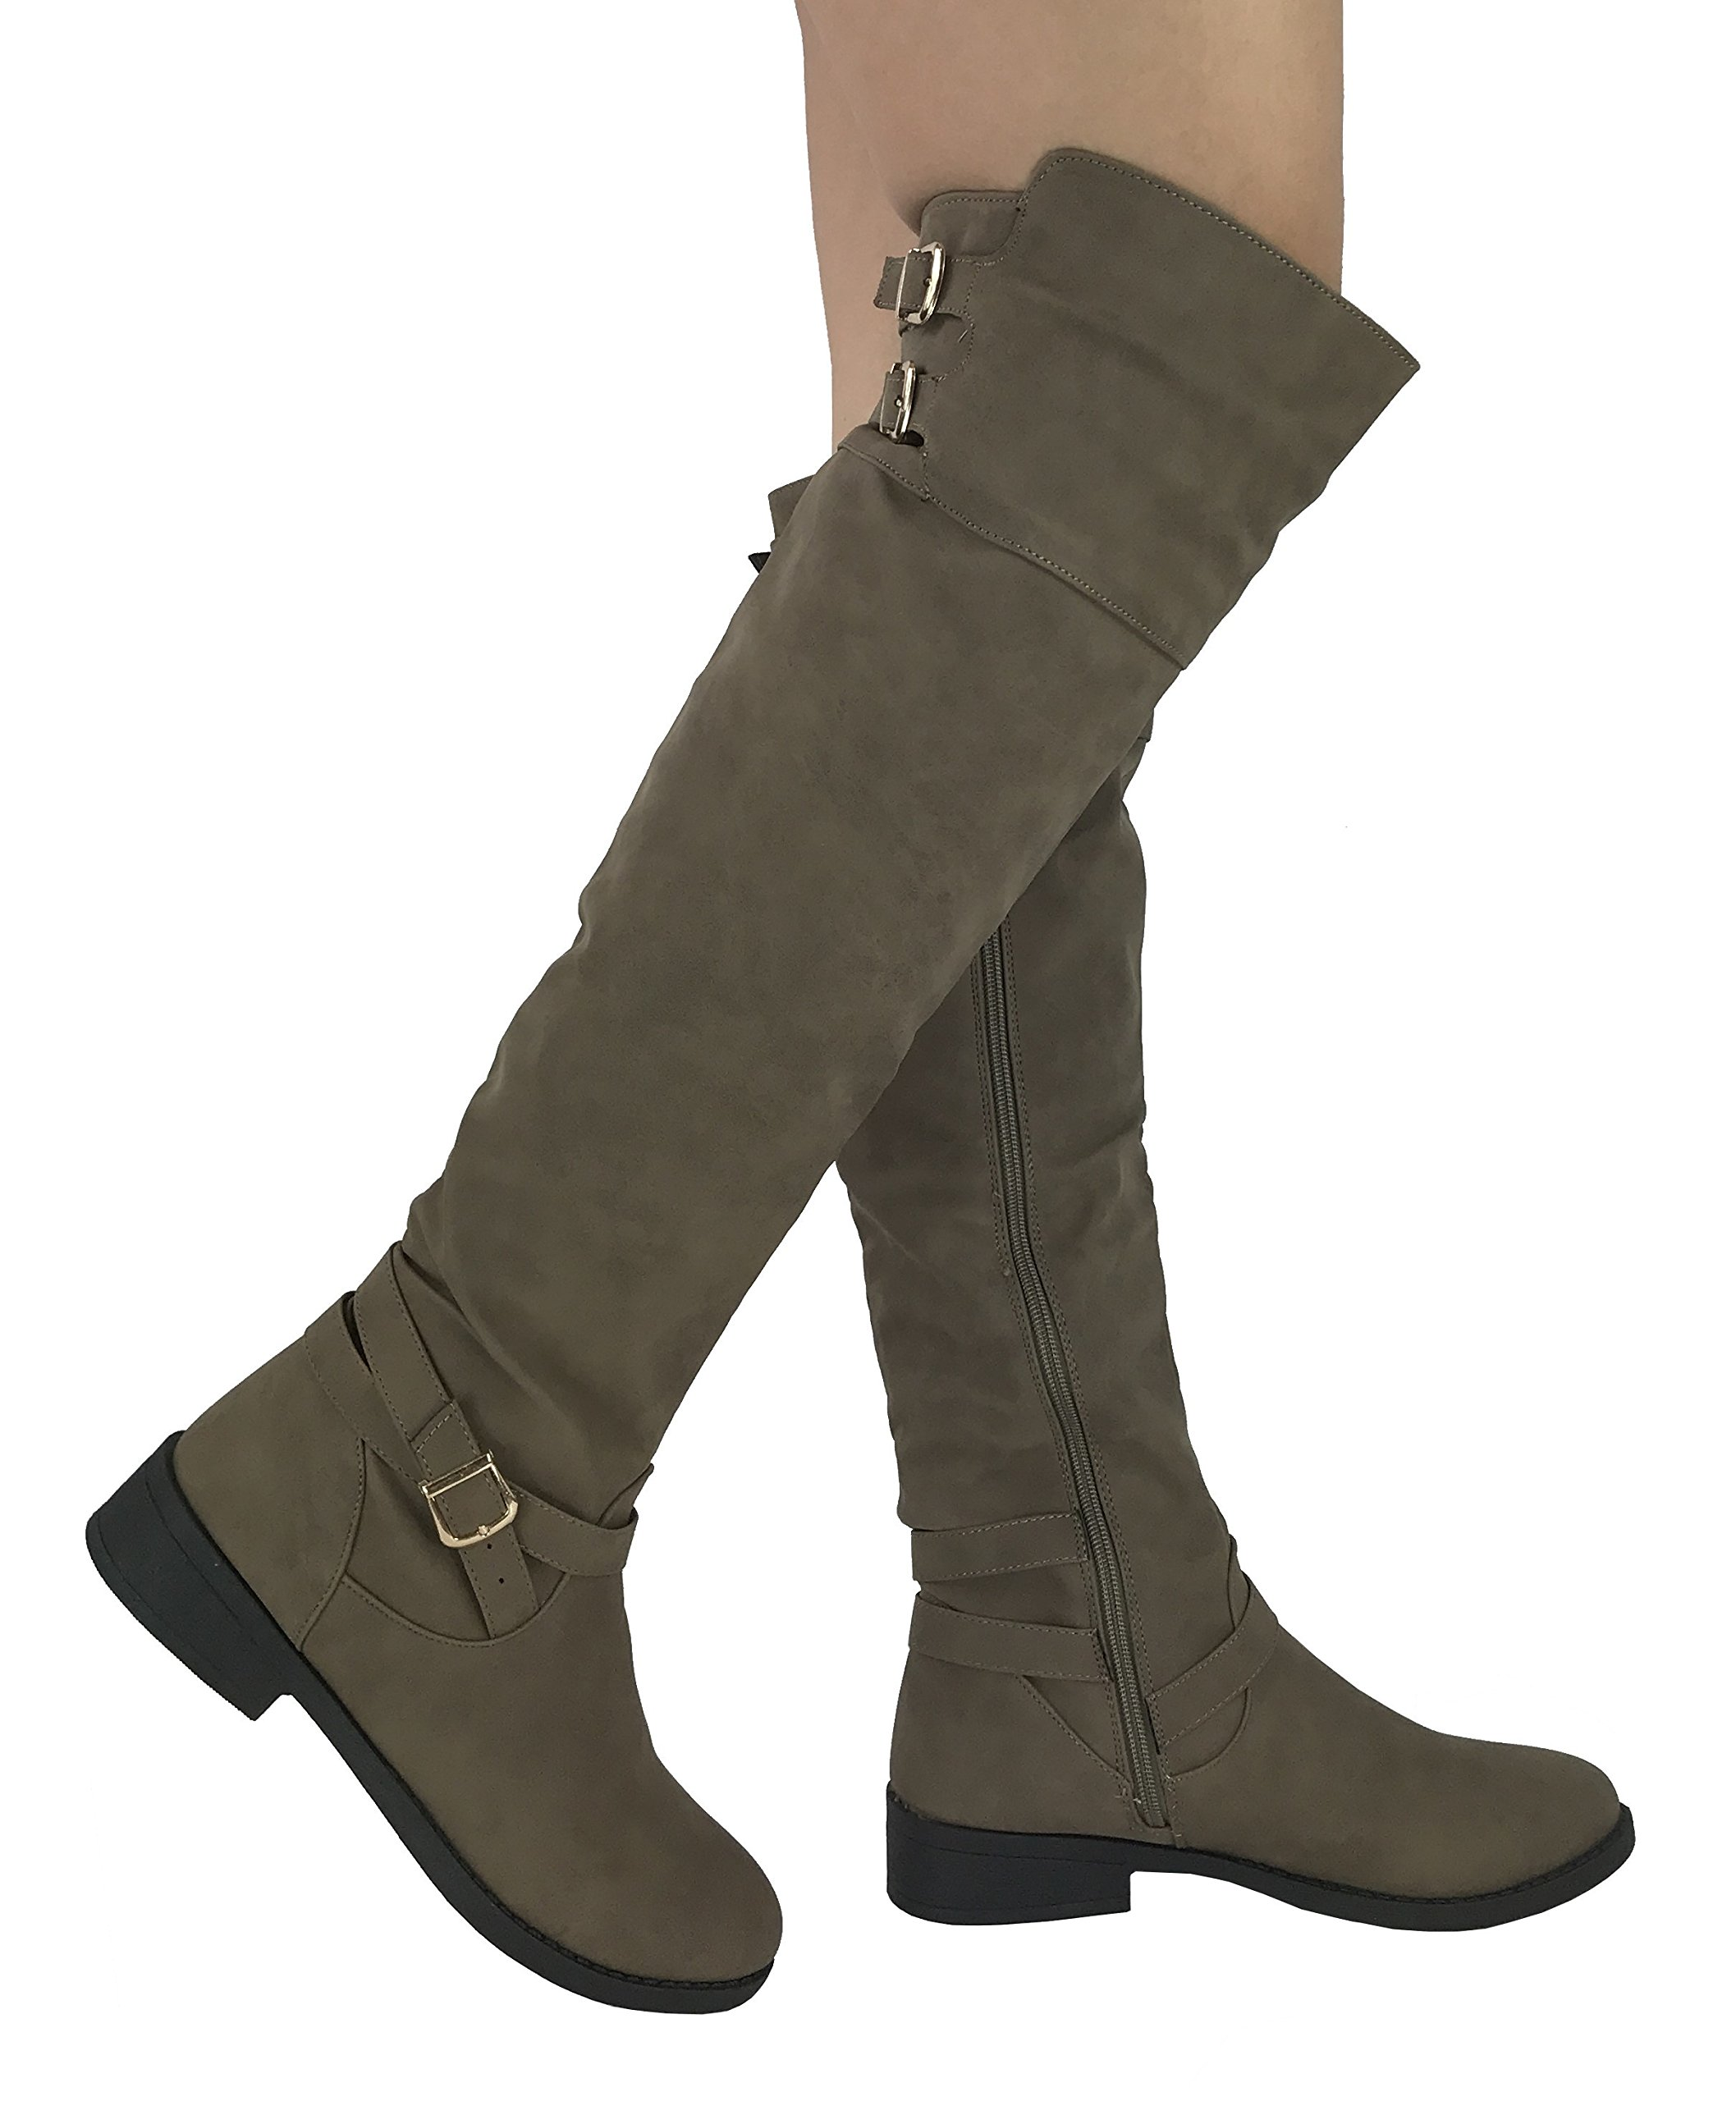 Wells Collection Womens Fiorina Over The Knee High Tall Riding Boots with Zipper,Taupe, 10